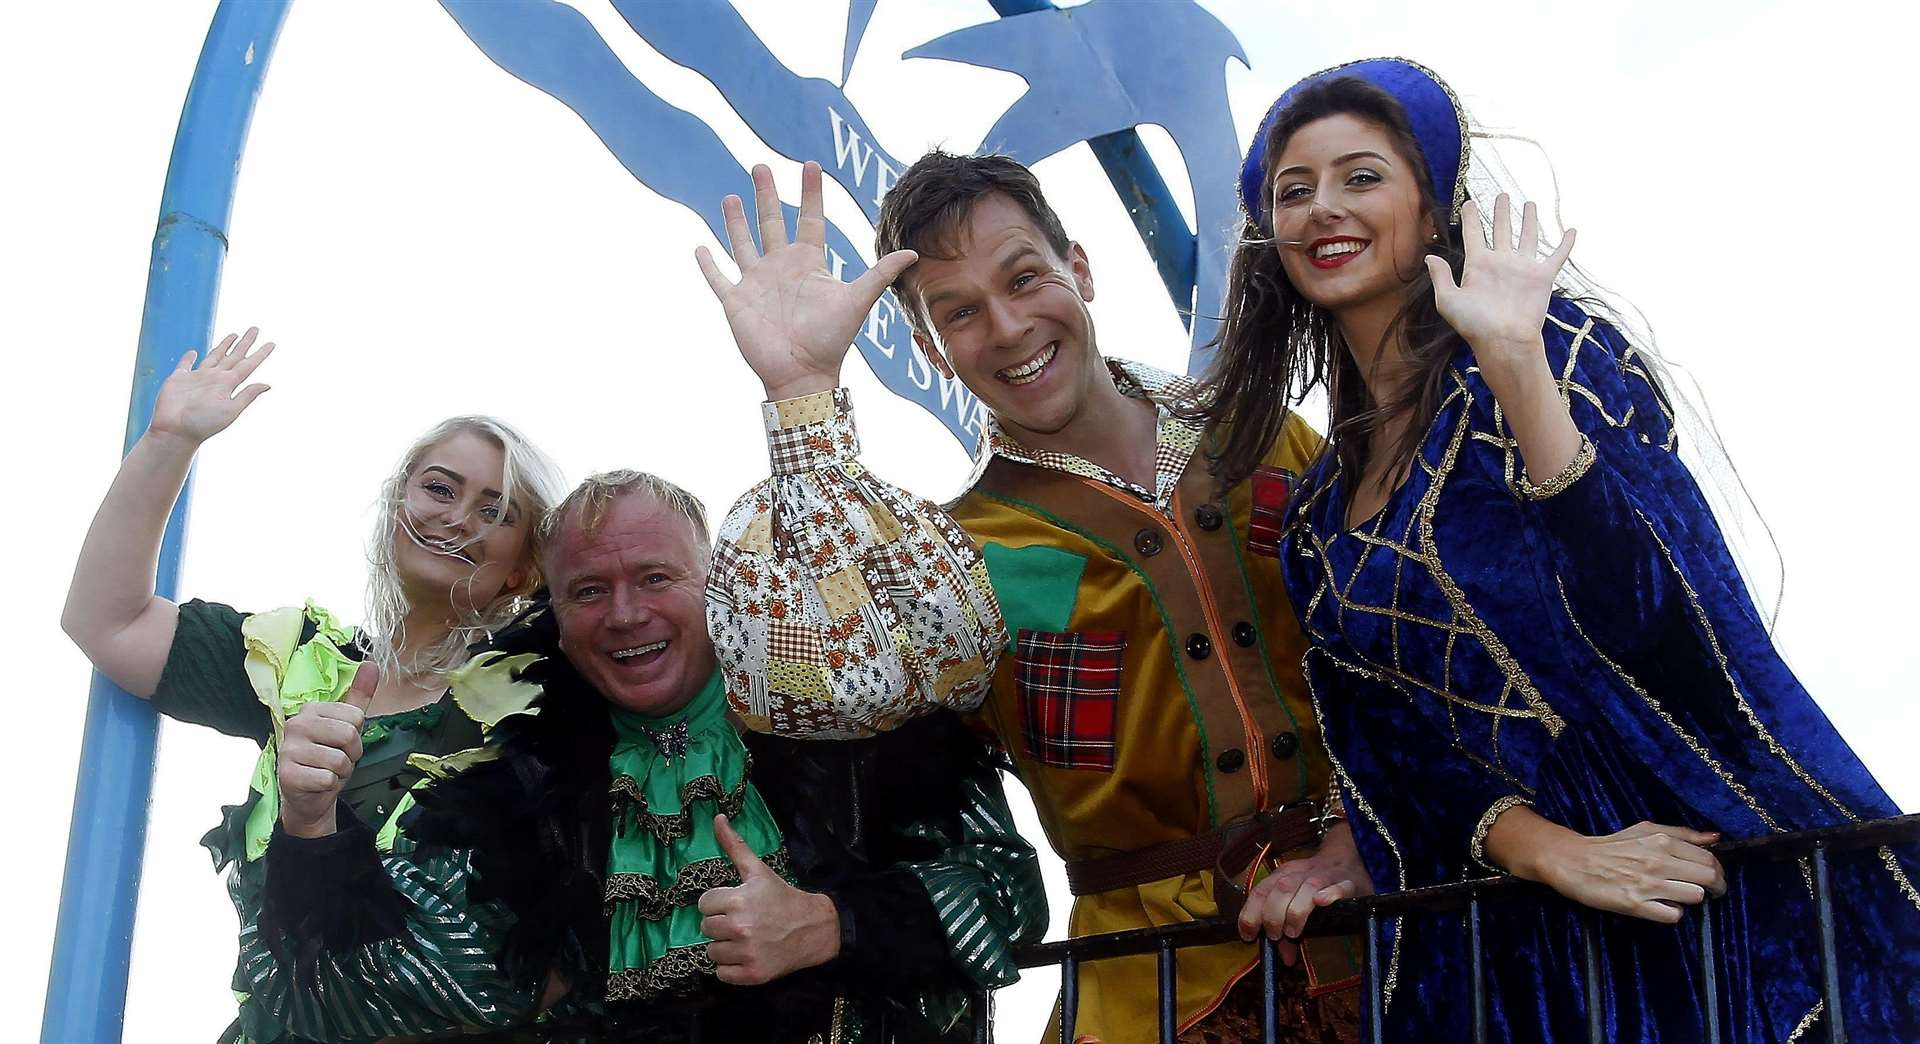 Swallows Leisure Centre, Sittingbourne, stars from Jack and the Beanstalk...Olivia McLaughin, Steven Arnold, Tom Balmont and Katie Burke. ..Picture: Sean Aidan. (6180628)